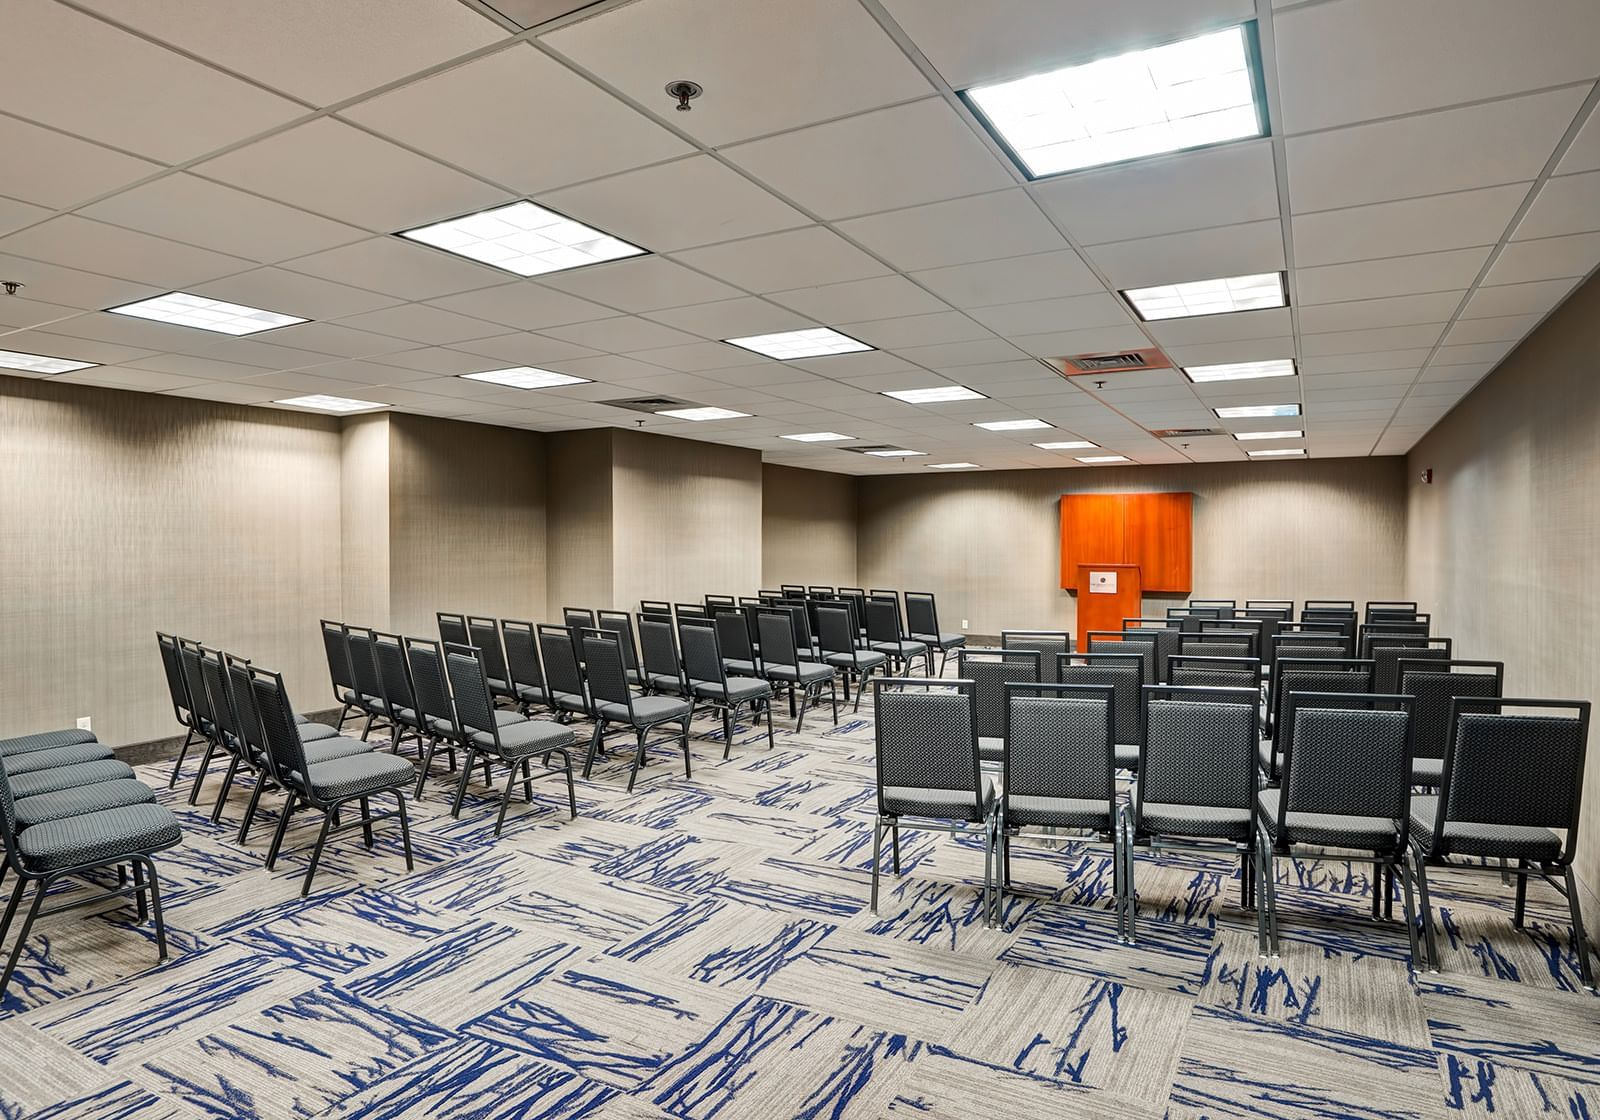 rows of chairs facing a podium